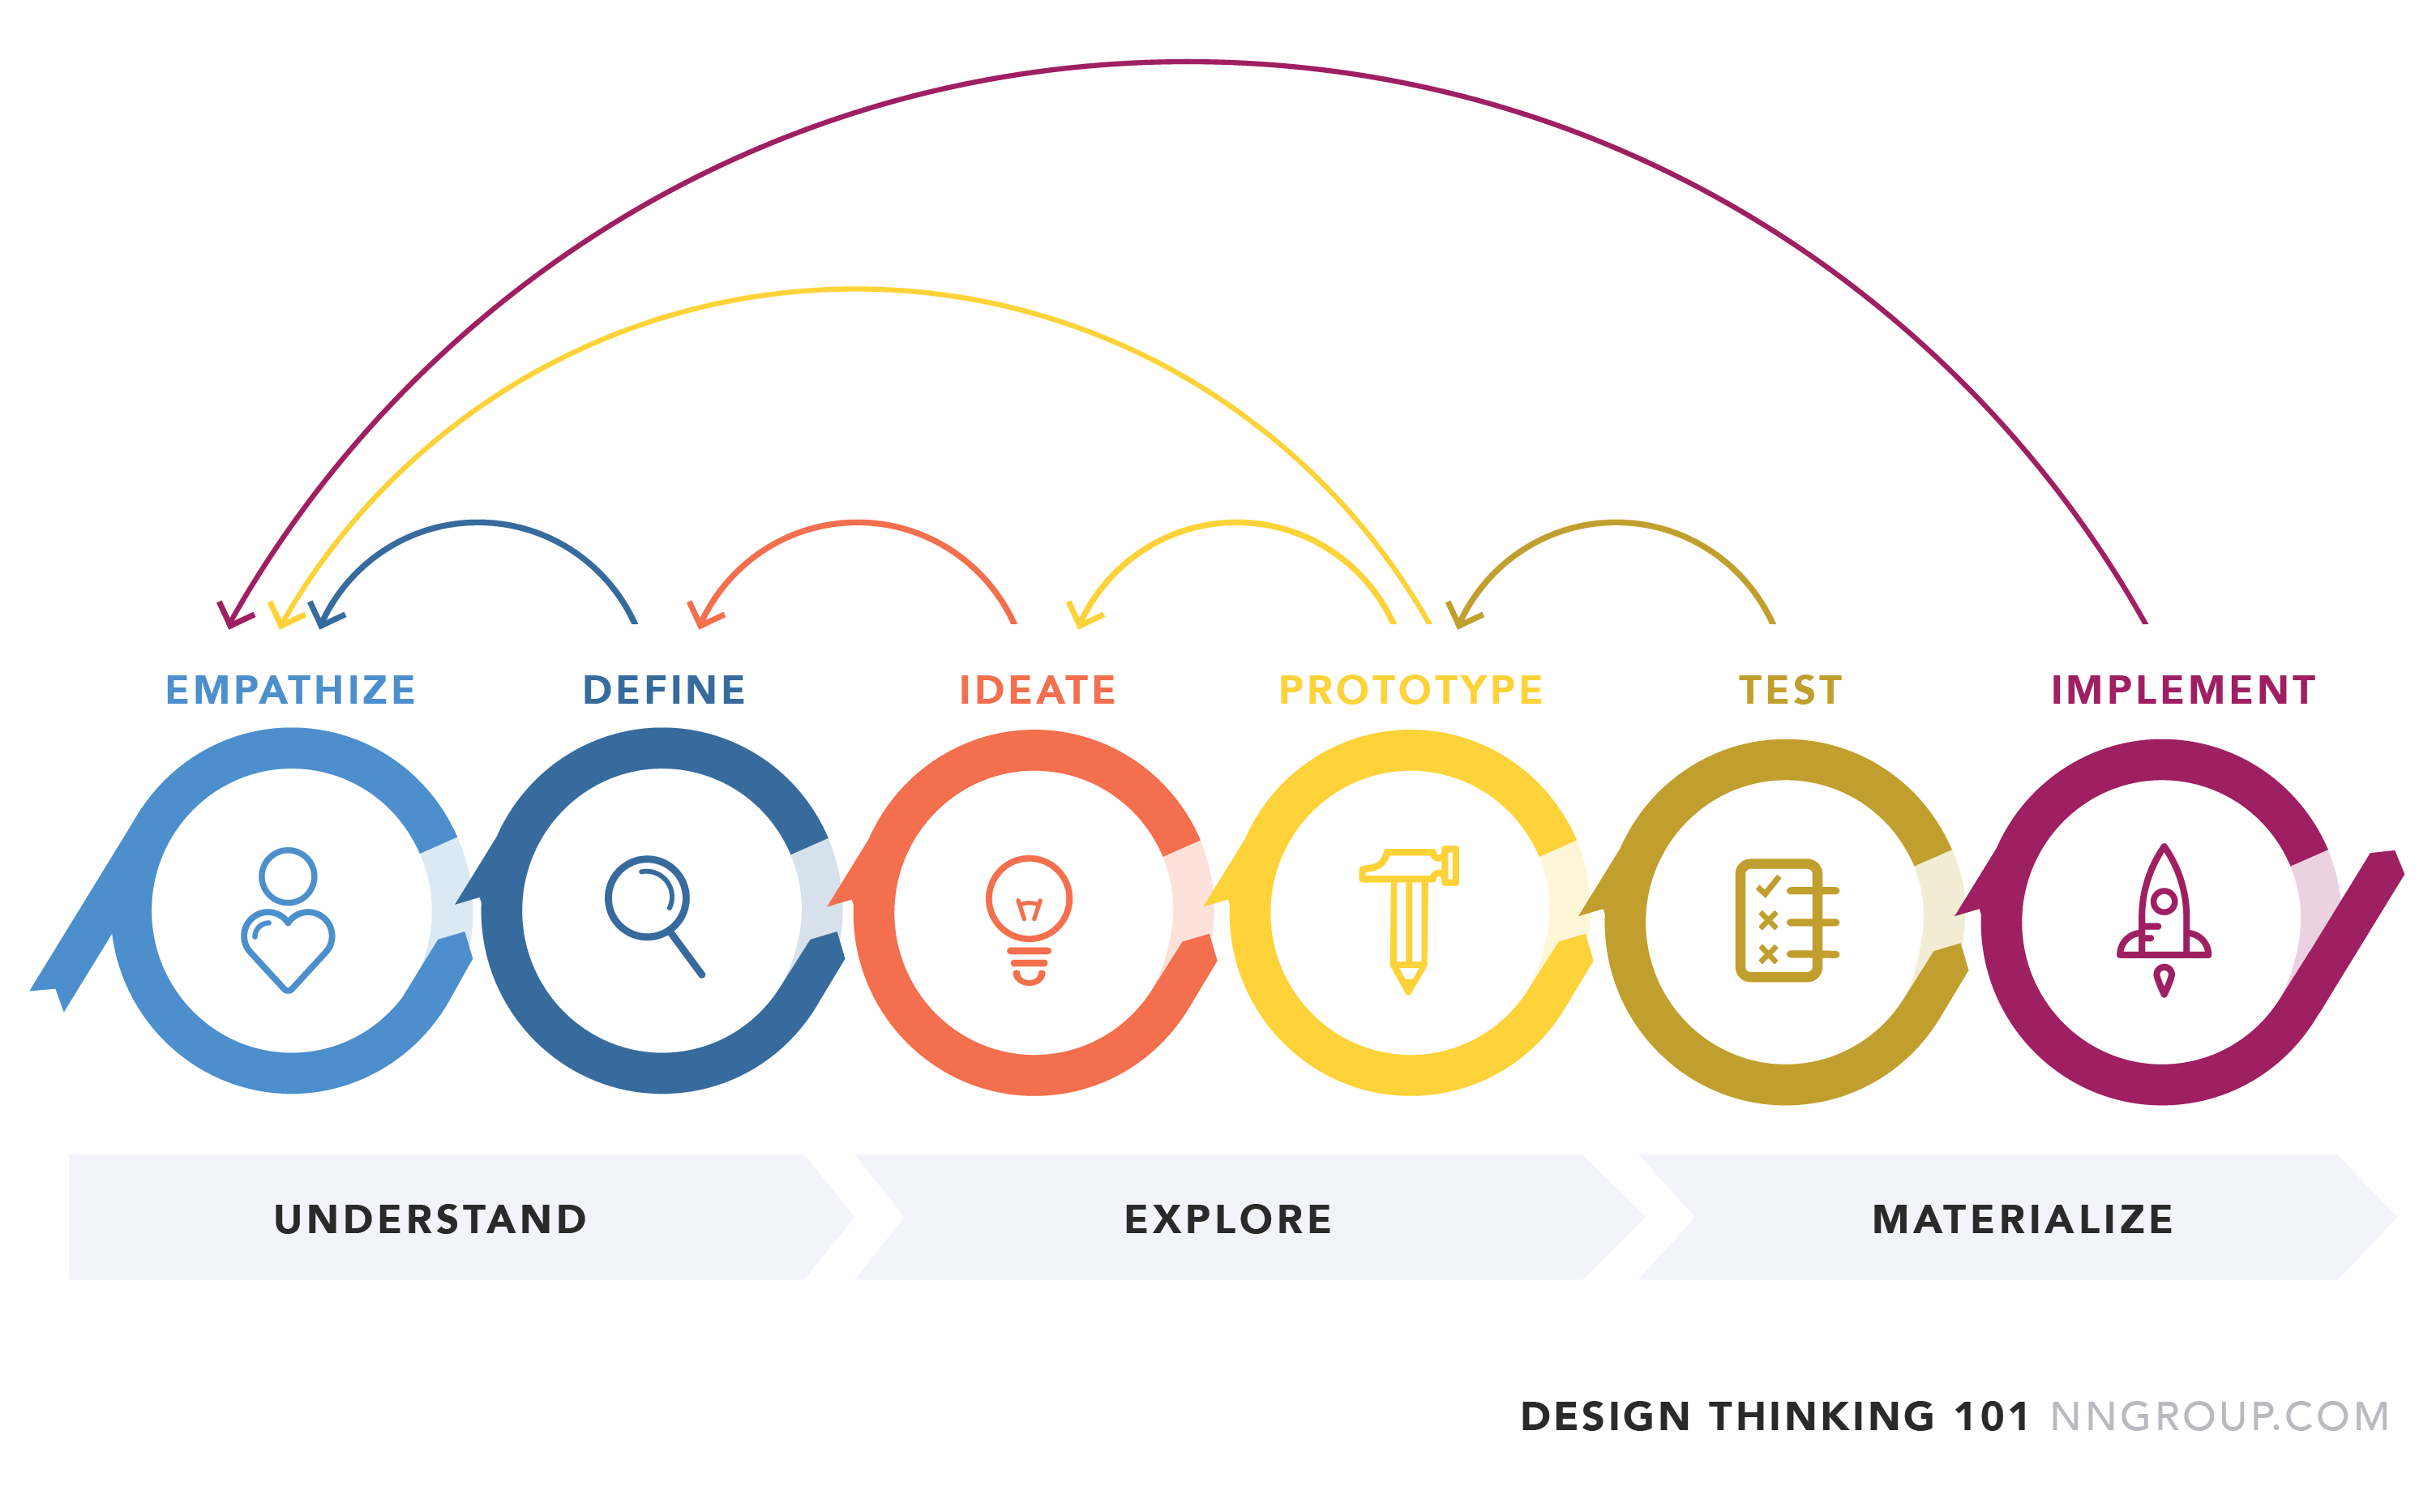 NNgroup's designthinking 101 process map